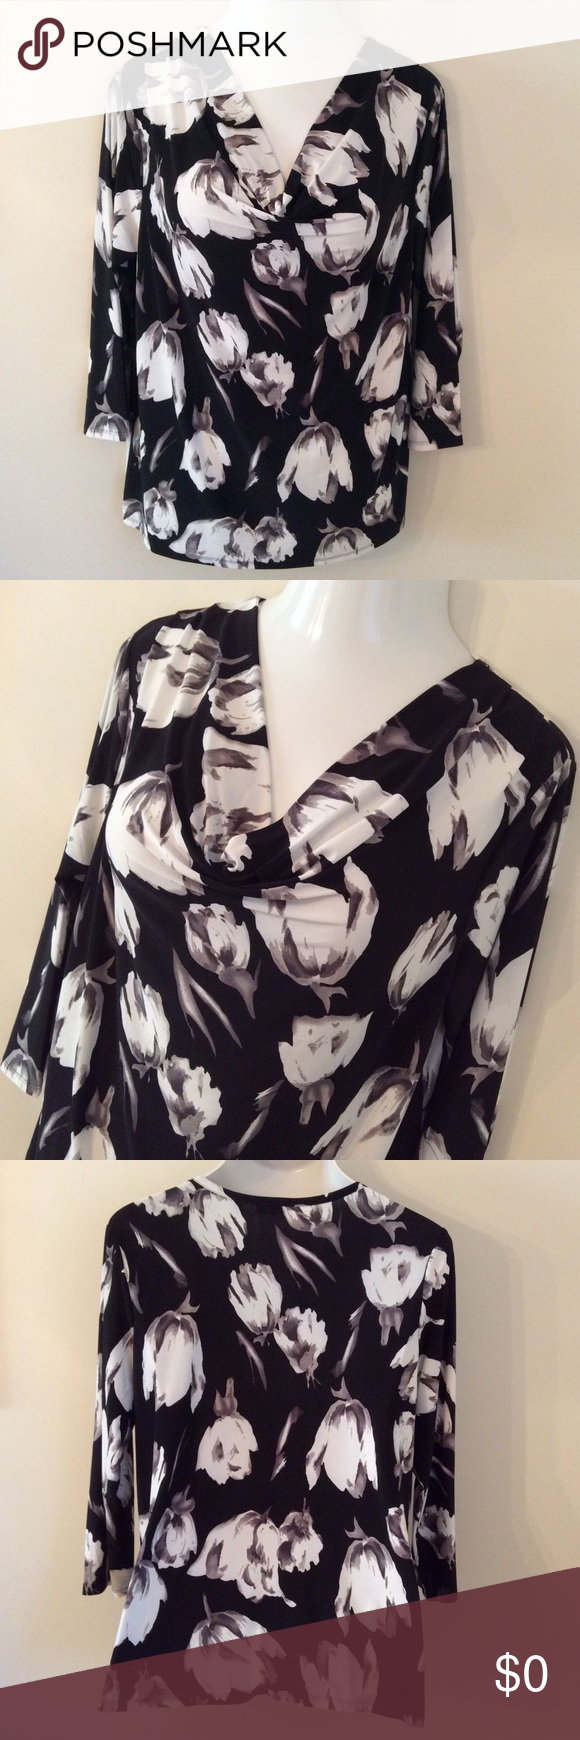 | classy floral drape neck pullover | Very Classy & Chic!  Black, White and Gray Floral (Drape Neck) Pullover. Material is 96% Polyester and 4% Spandex w/ 3/4 sleeves. Strazzi Tops Blouses